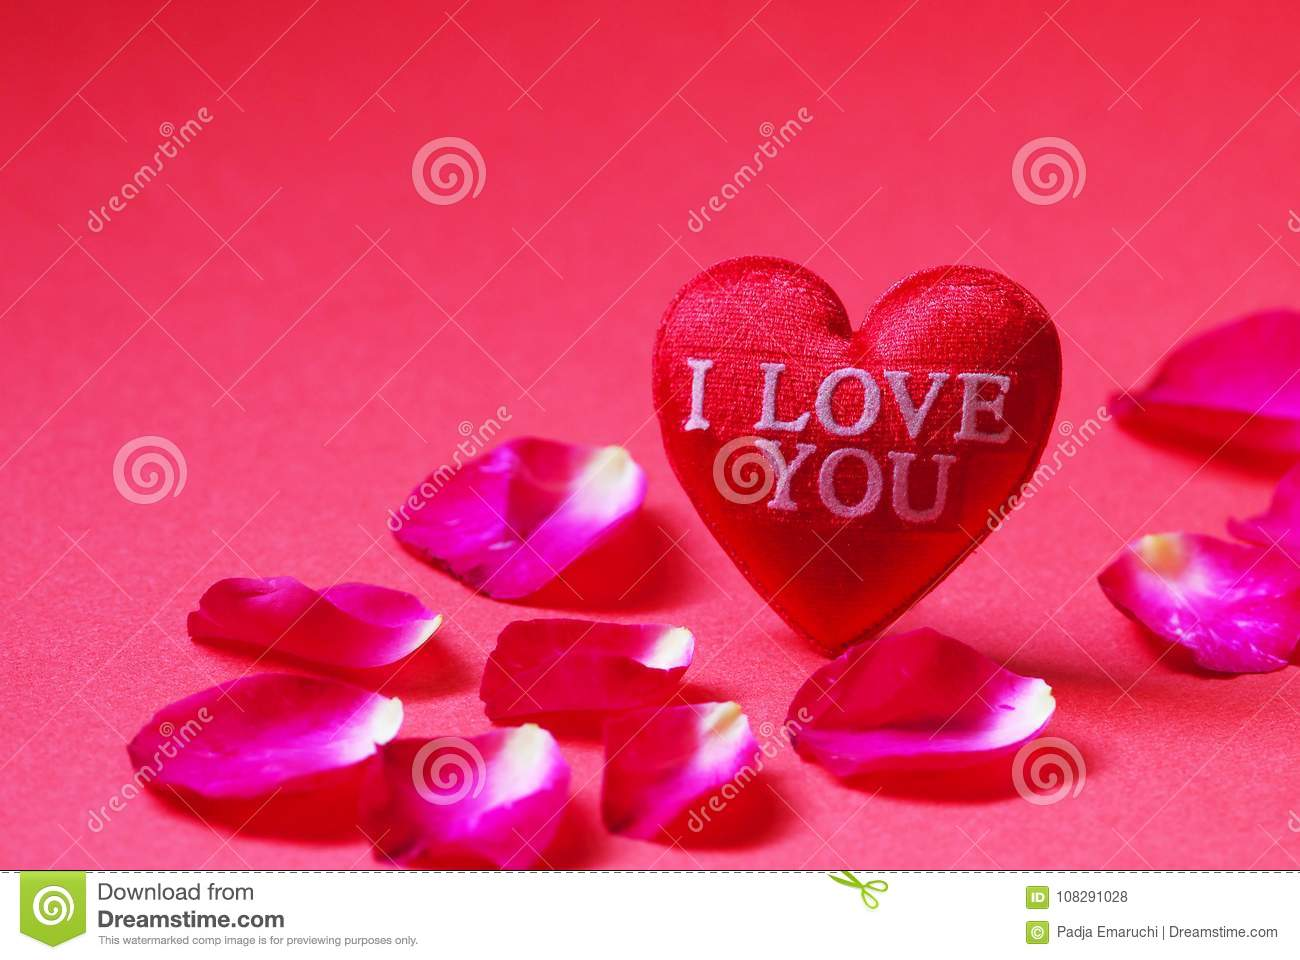 1 821 I Love You Rose Photos Free Royalty Free Stock Photos From Dreamstime